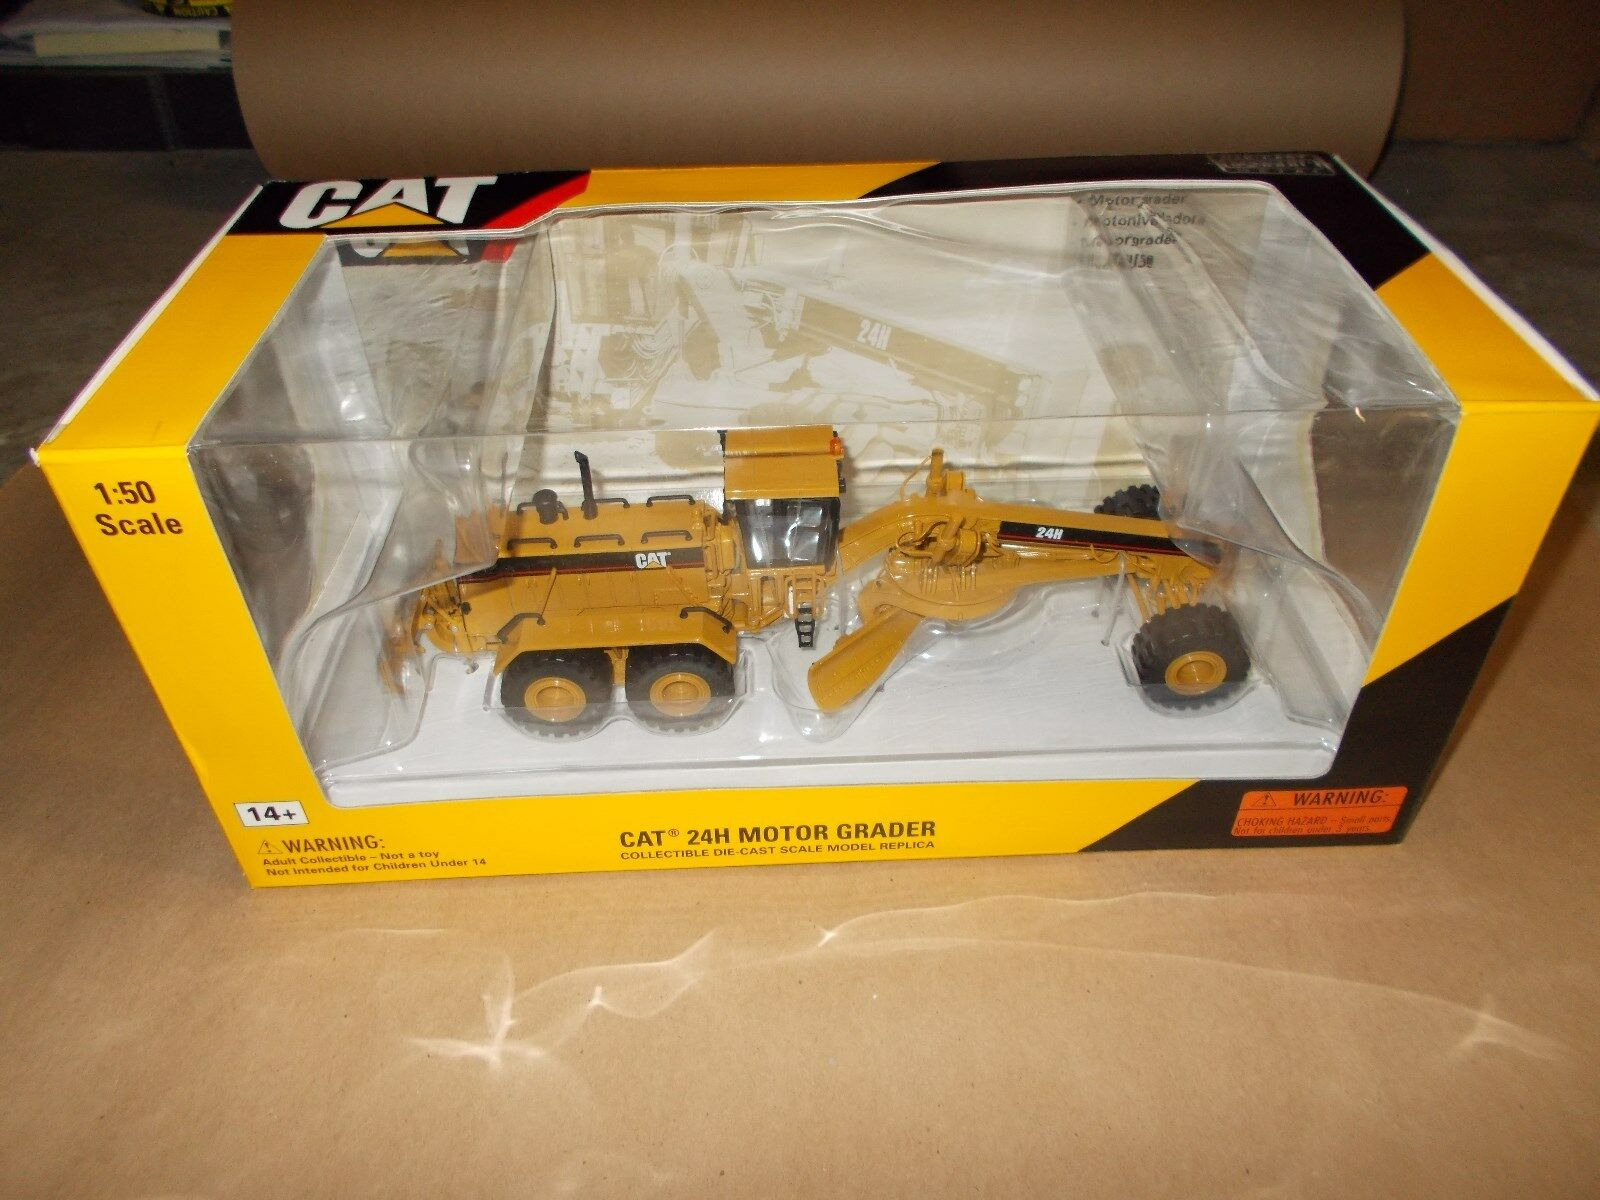 Norscot Cat 24H Motor Grader 1 50 scale Cat New Norscot 55133